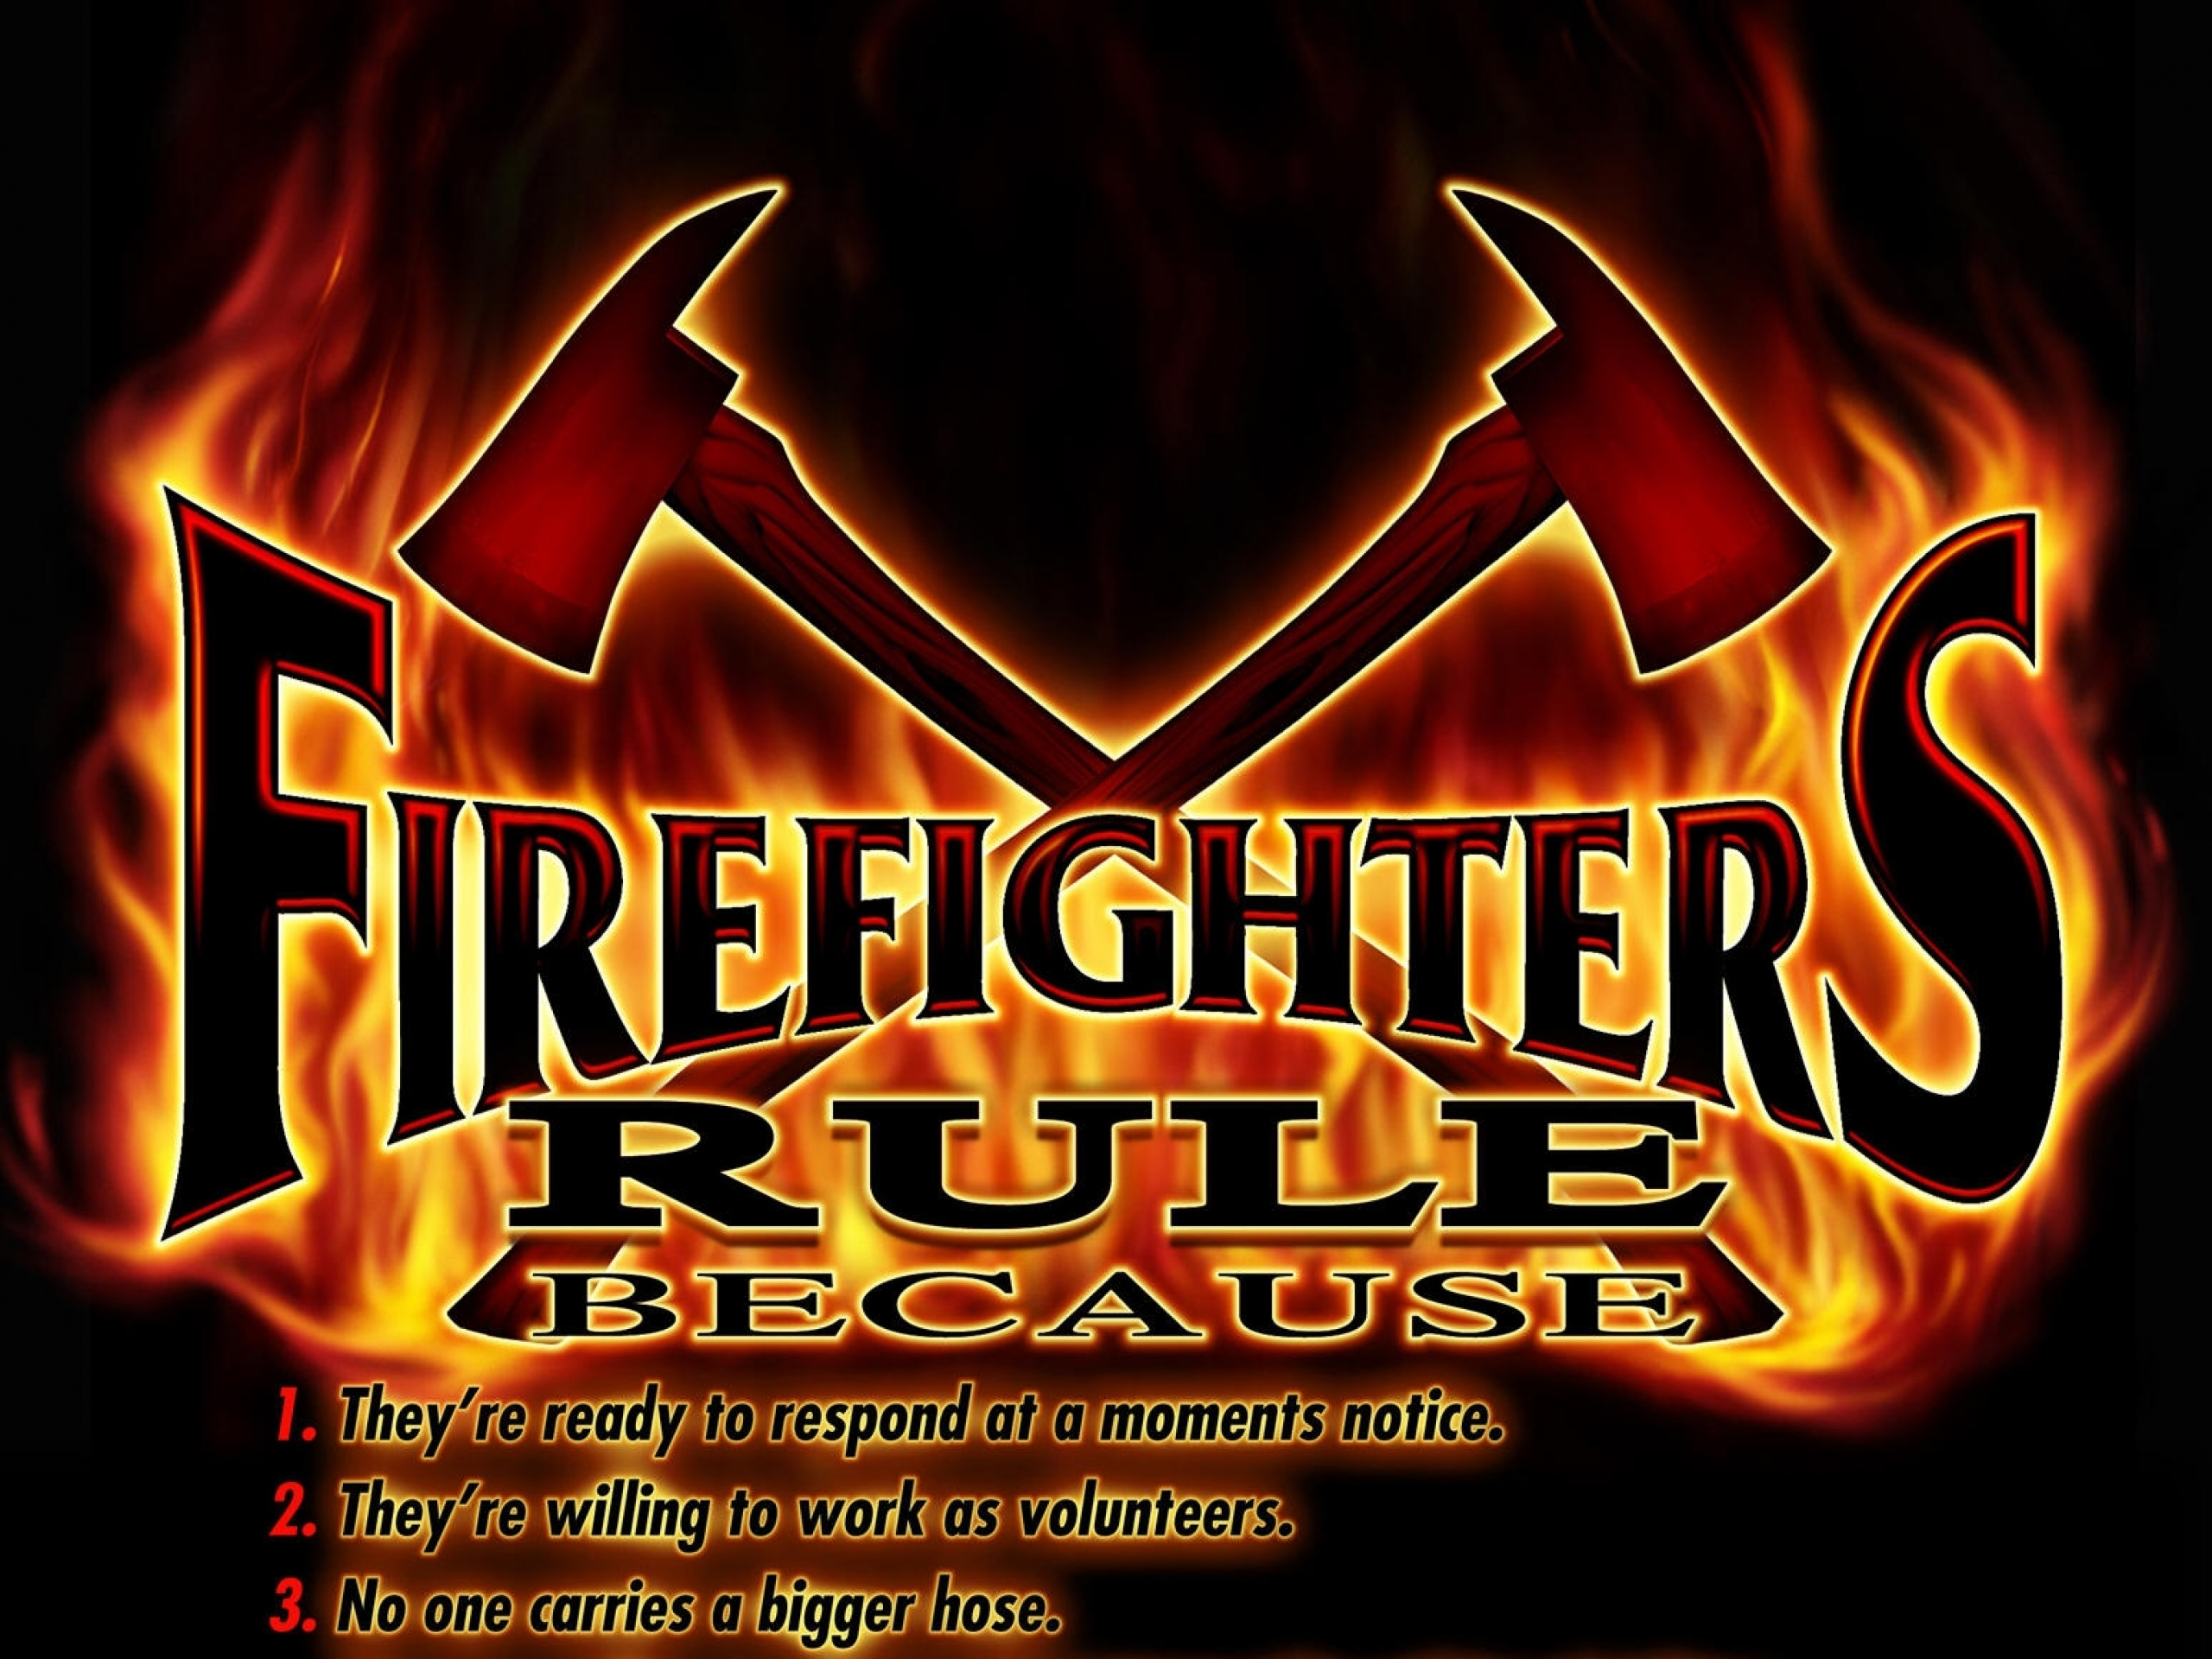 firefighter pics no gay8230 1548x1684 wallpa Knowledge HD WallpaperHi 2560x1920